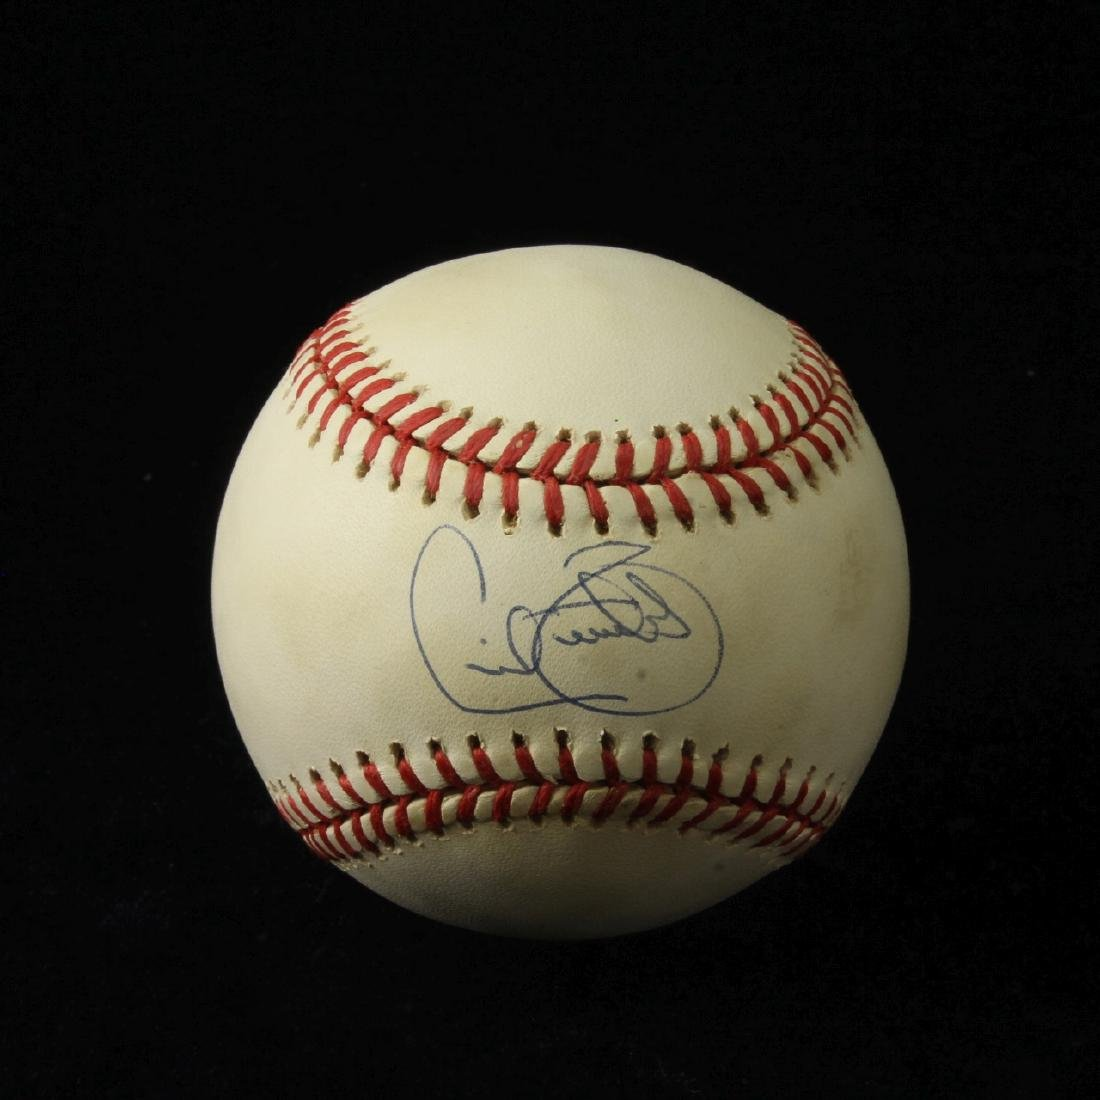 Autographed Baseball with CoA, Cecil Fielder